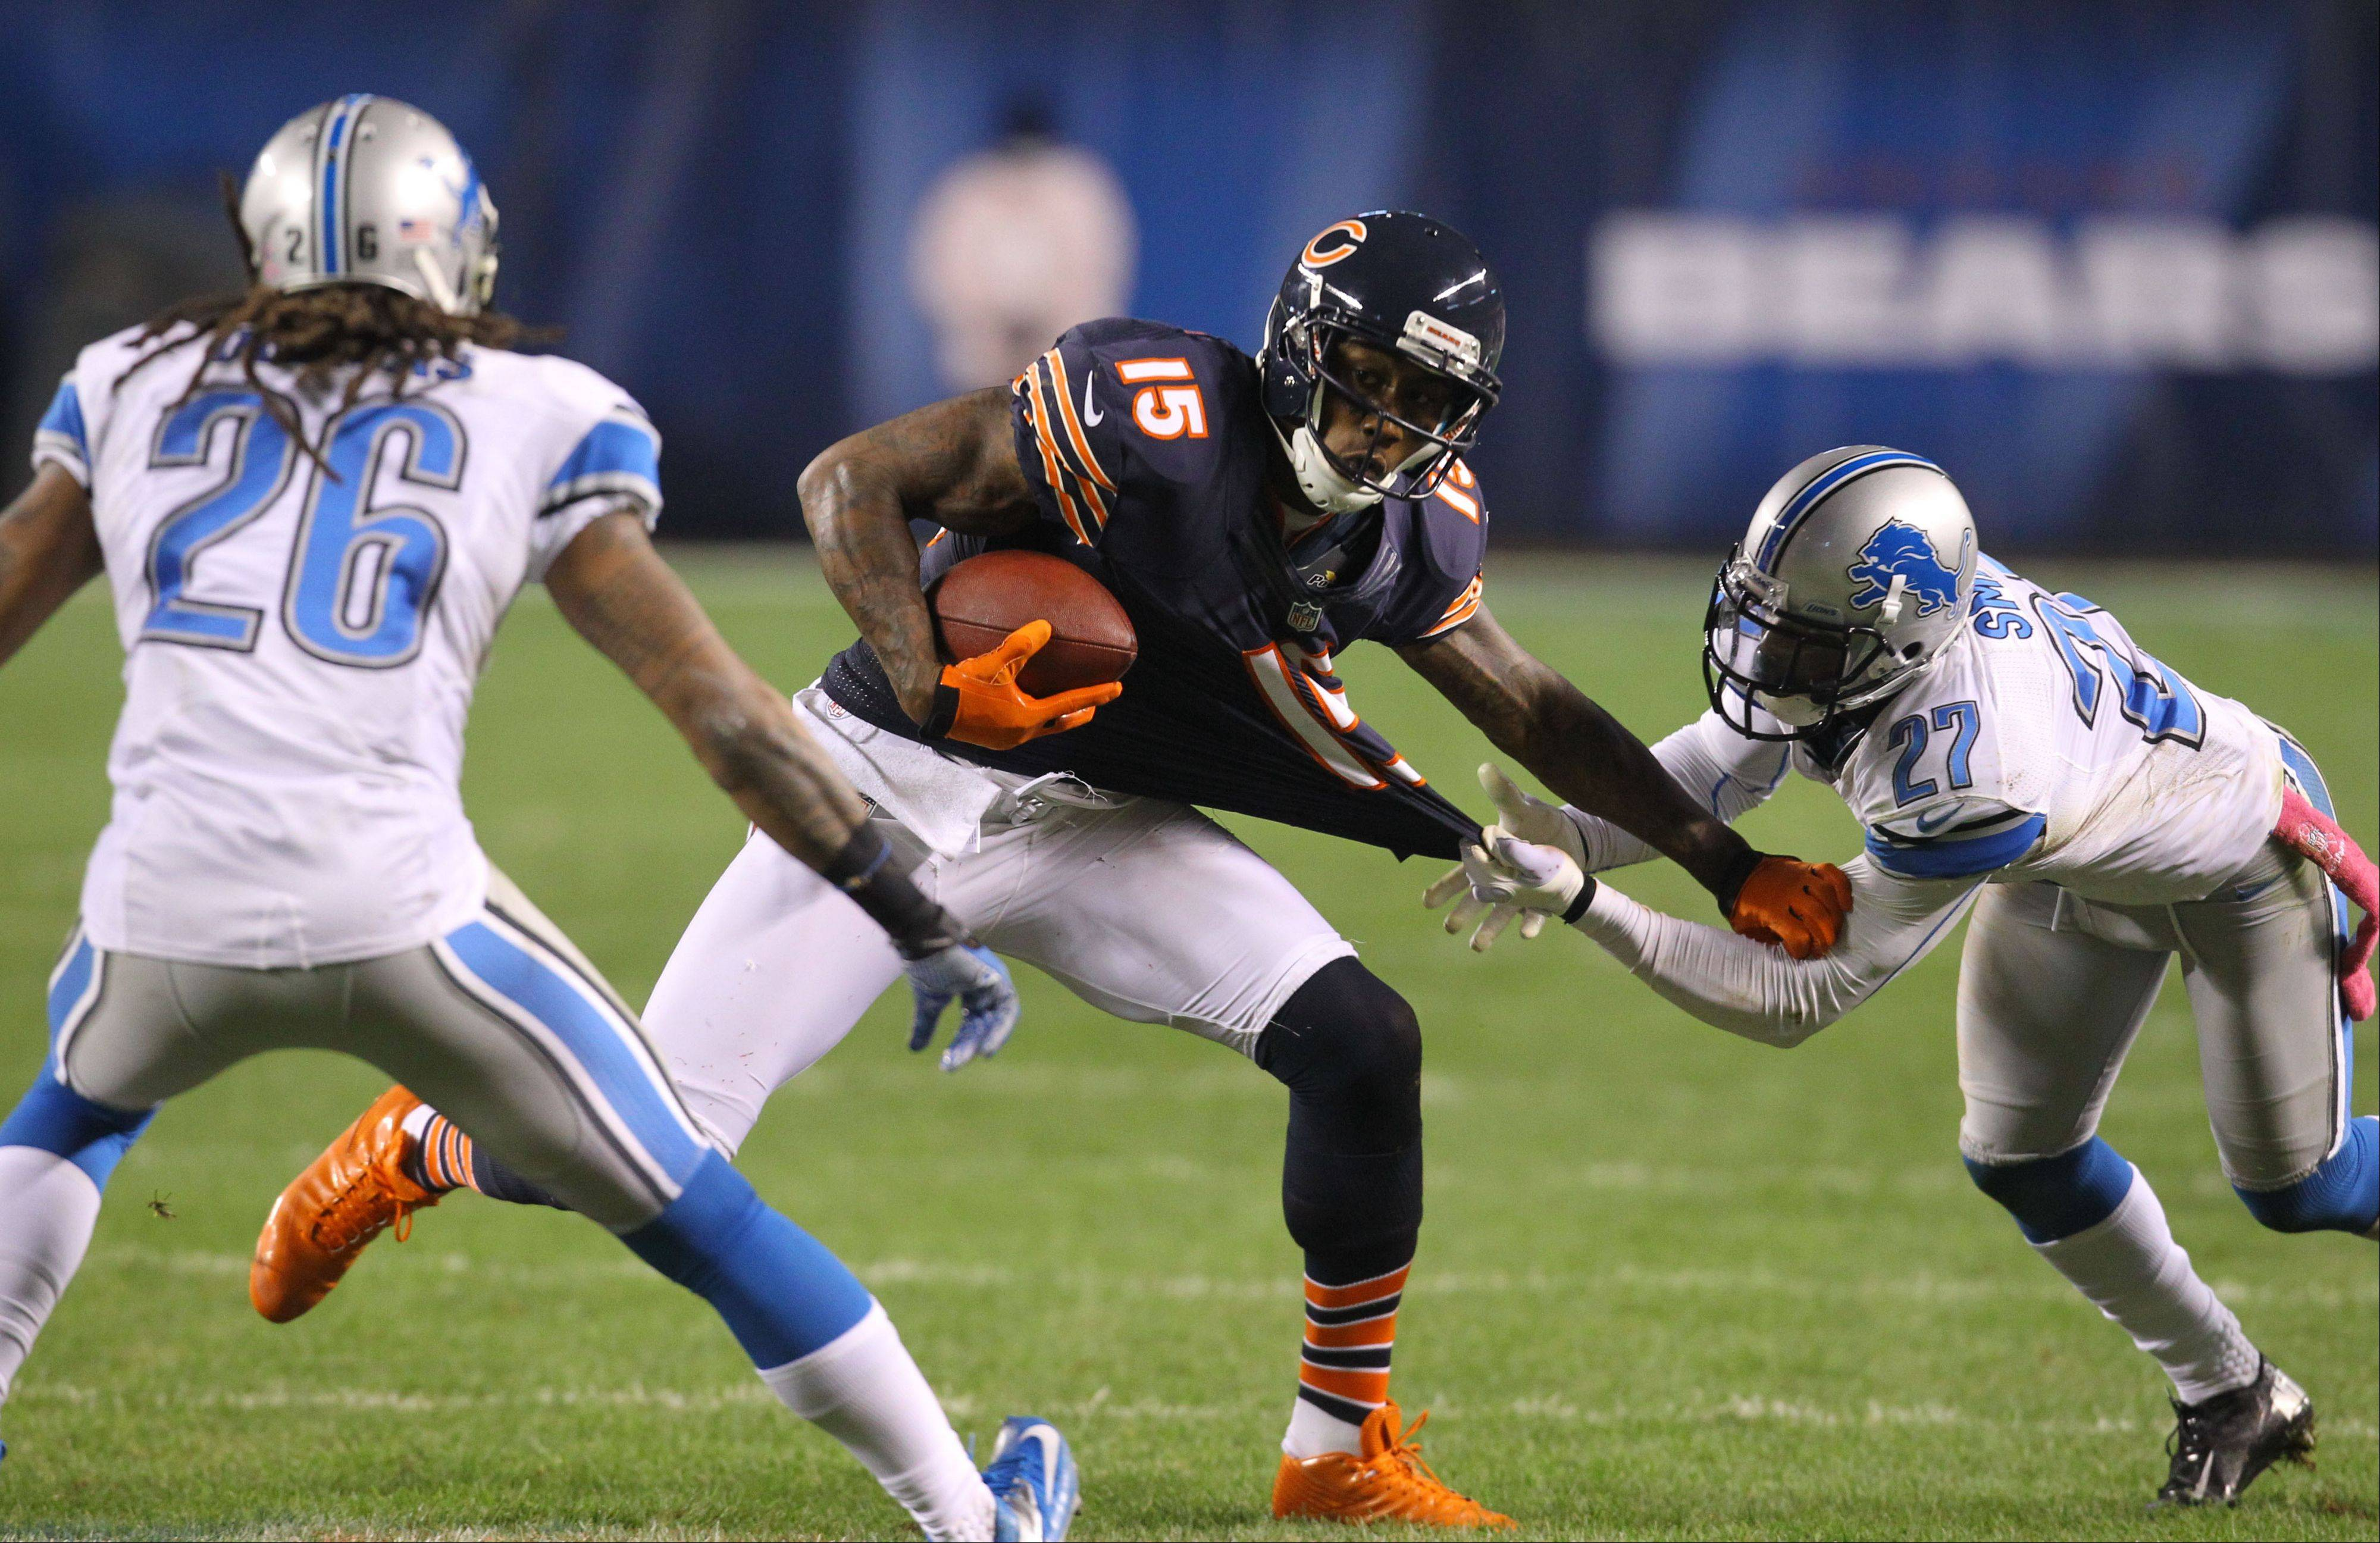 Chicago Bears wide receiver Brandon Marshall tries to get around Detroit Lions free safety Louis Delmas during their game Monday night at Soldier Field in Chicago.